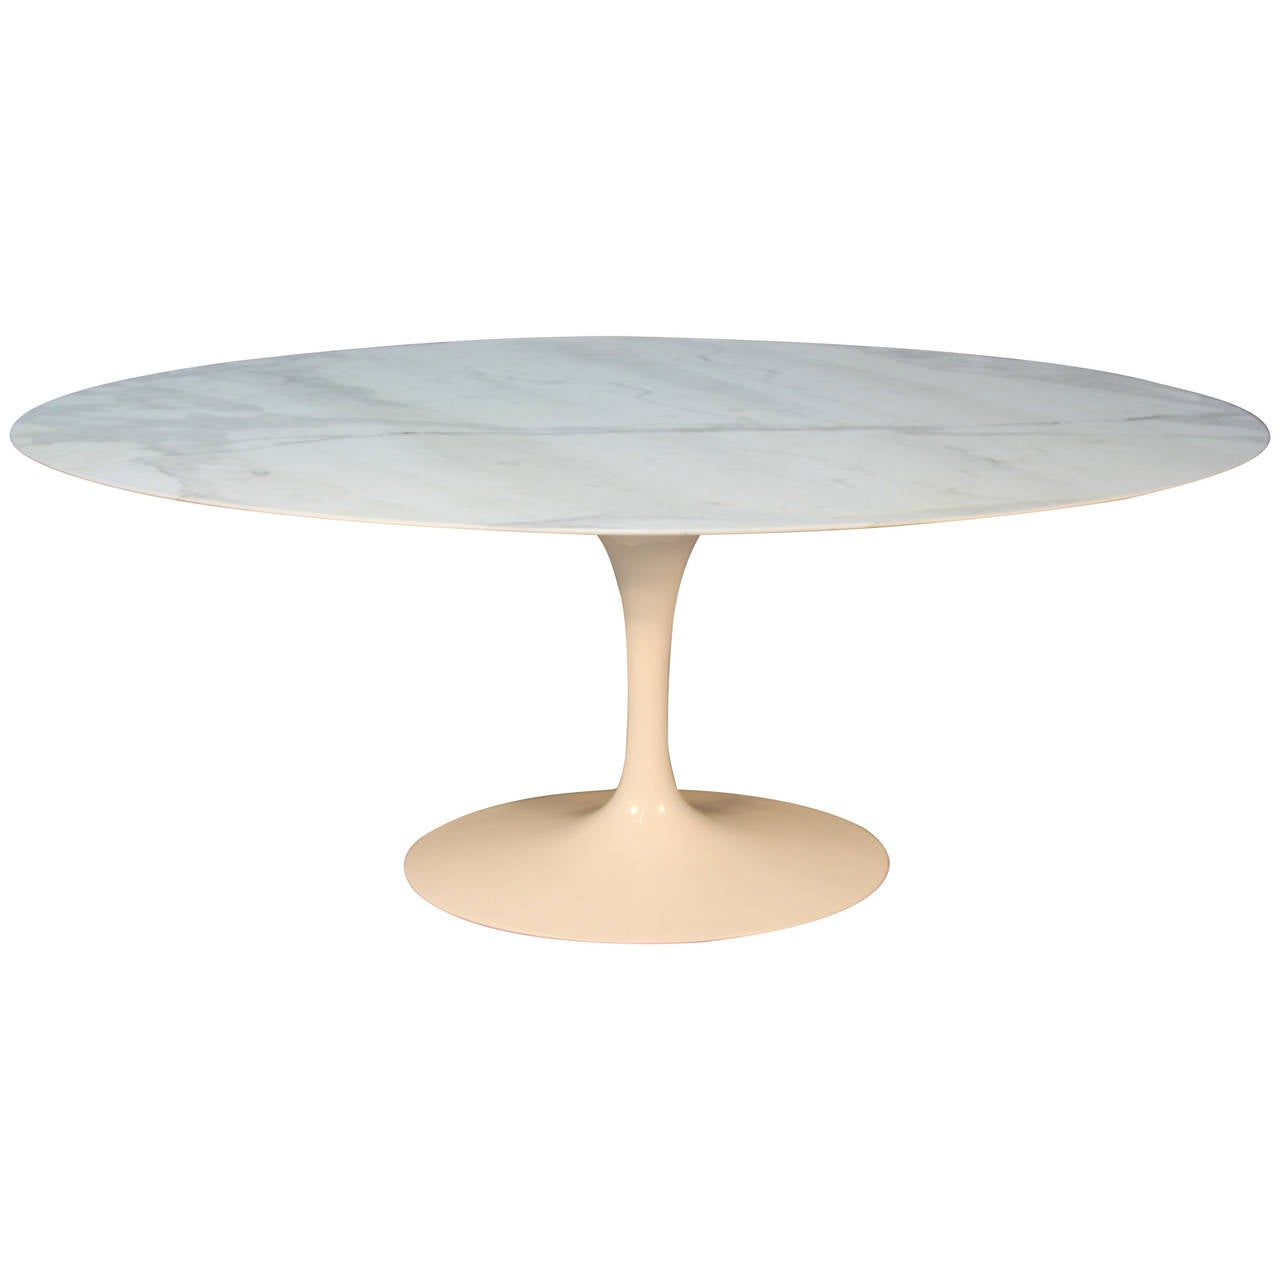 Saarinen Oval Marble Top Dining Table At 1stdibs